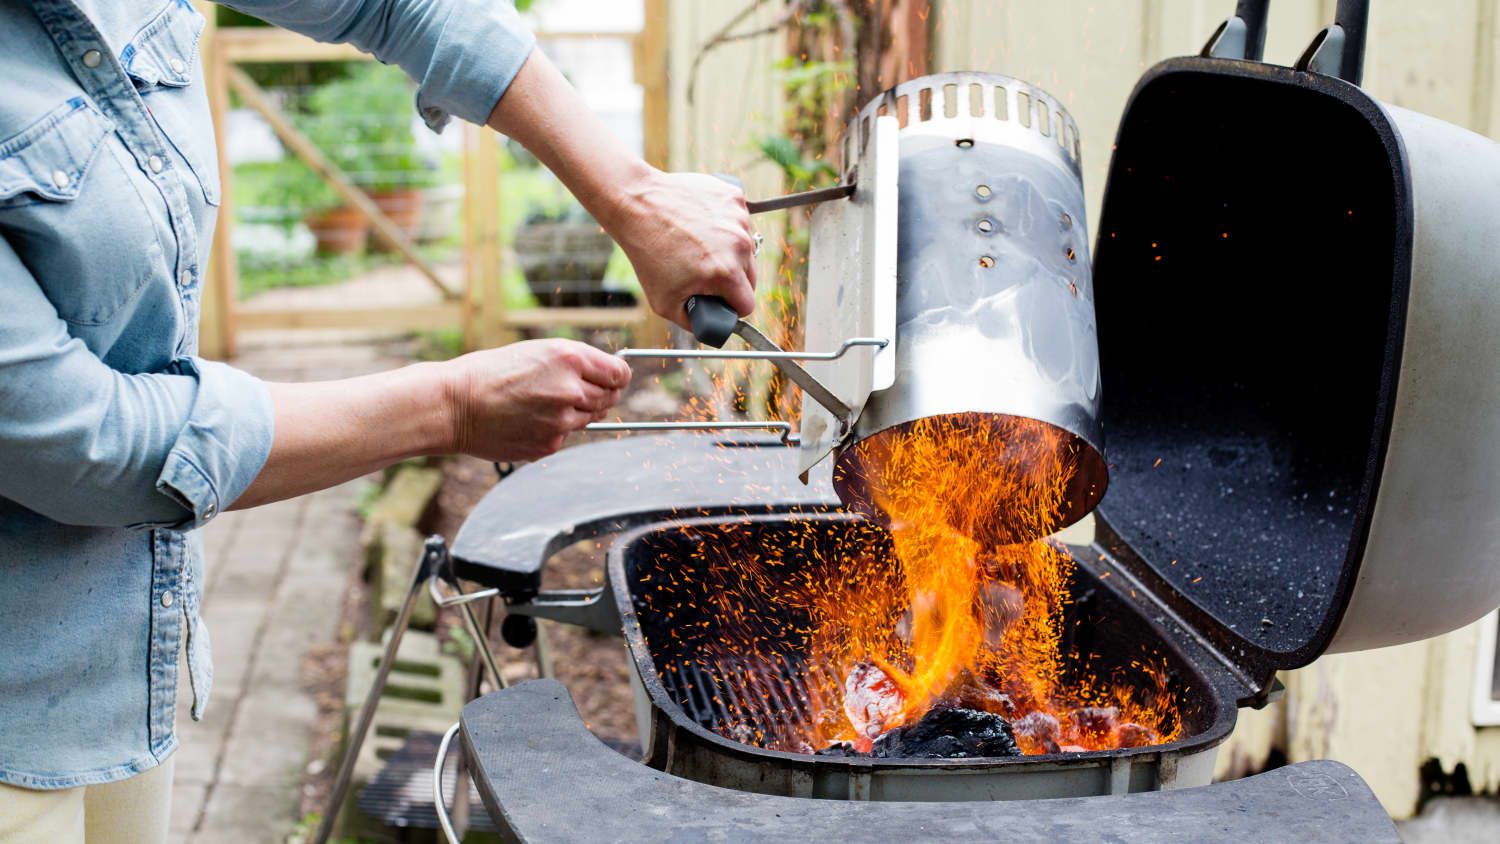 Everything To Know About Buying And Using A Charcoal Grill Kitchn